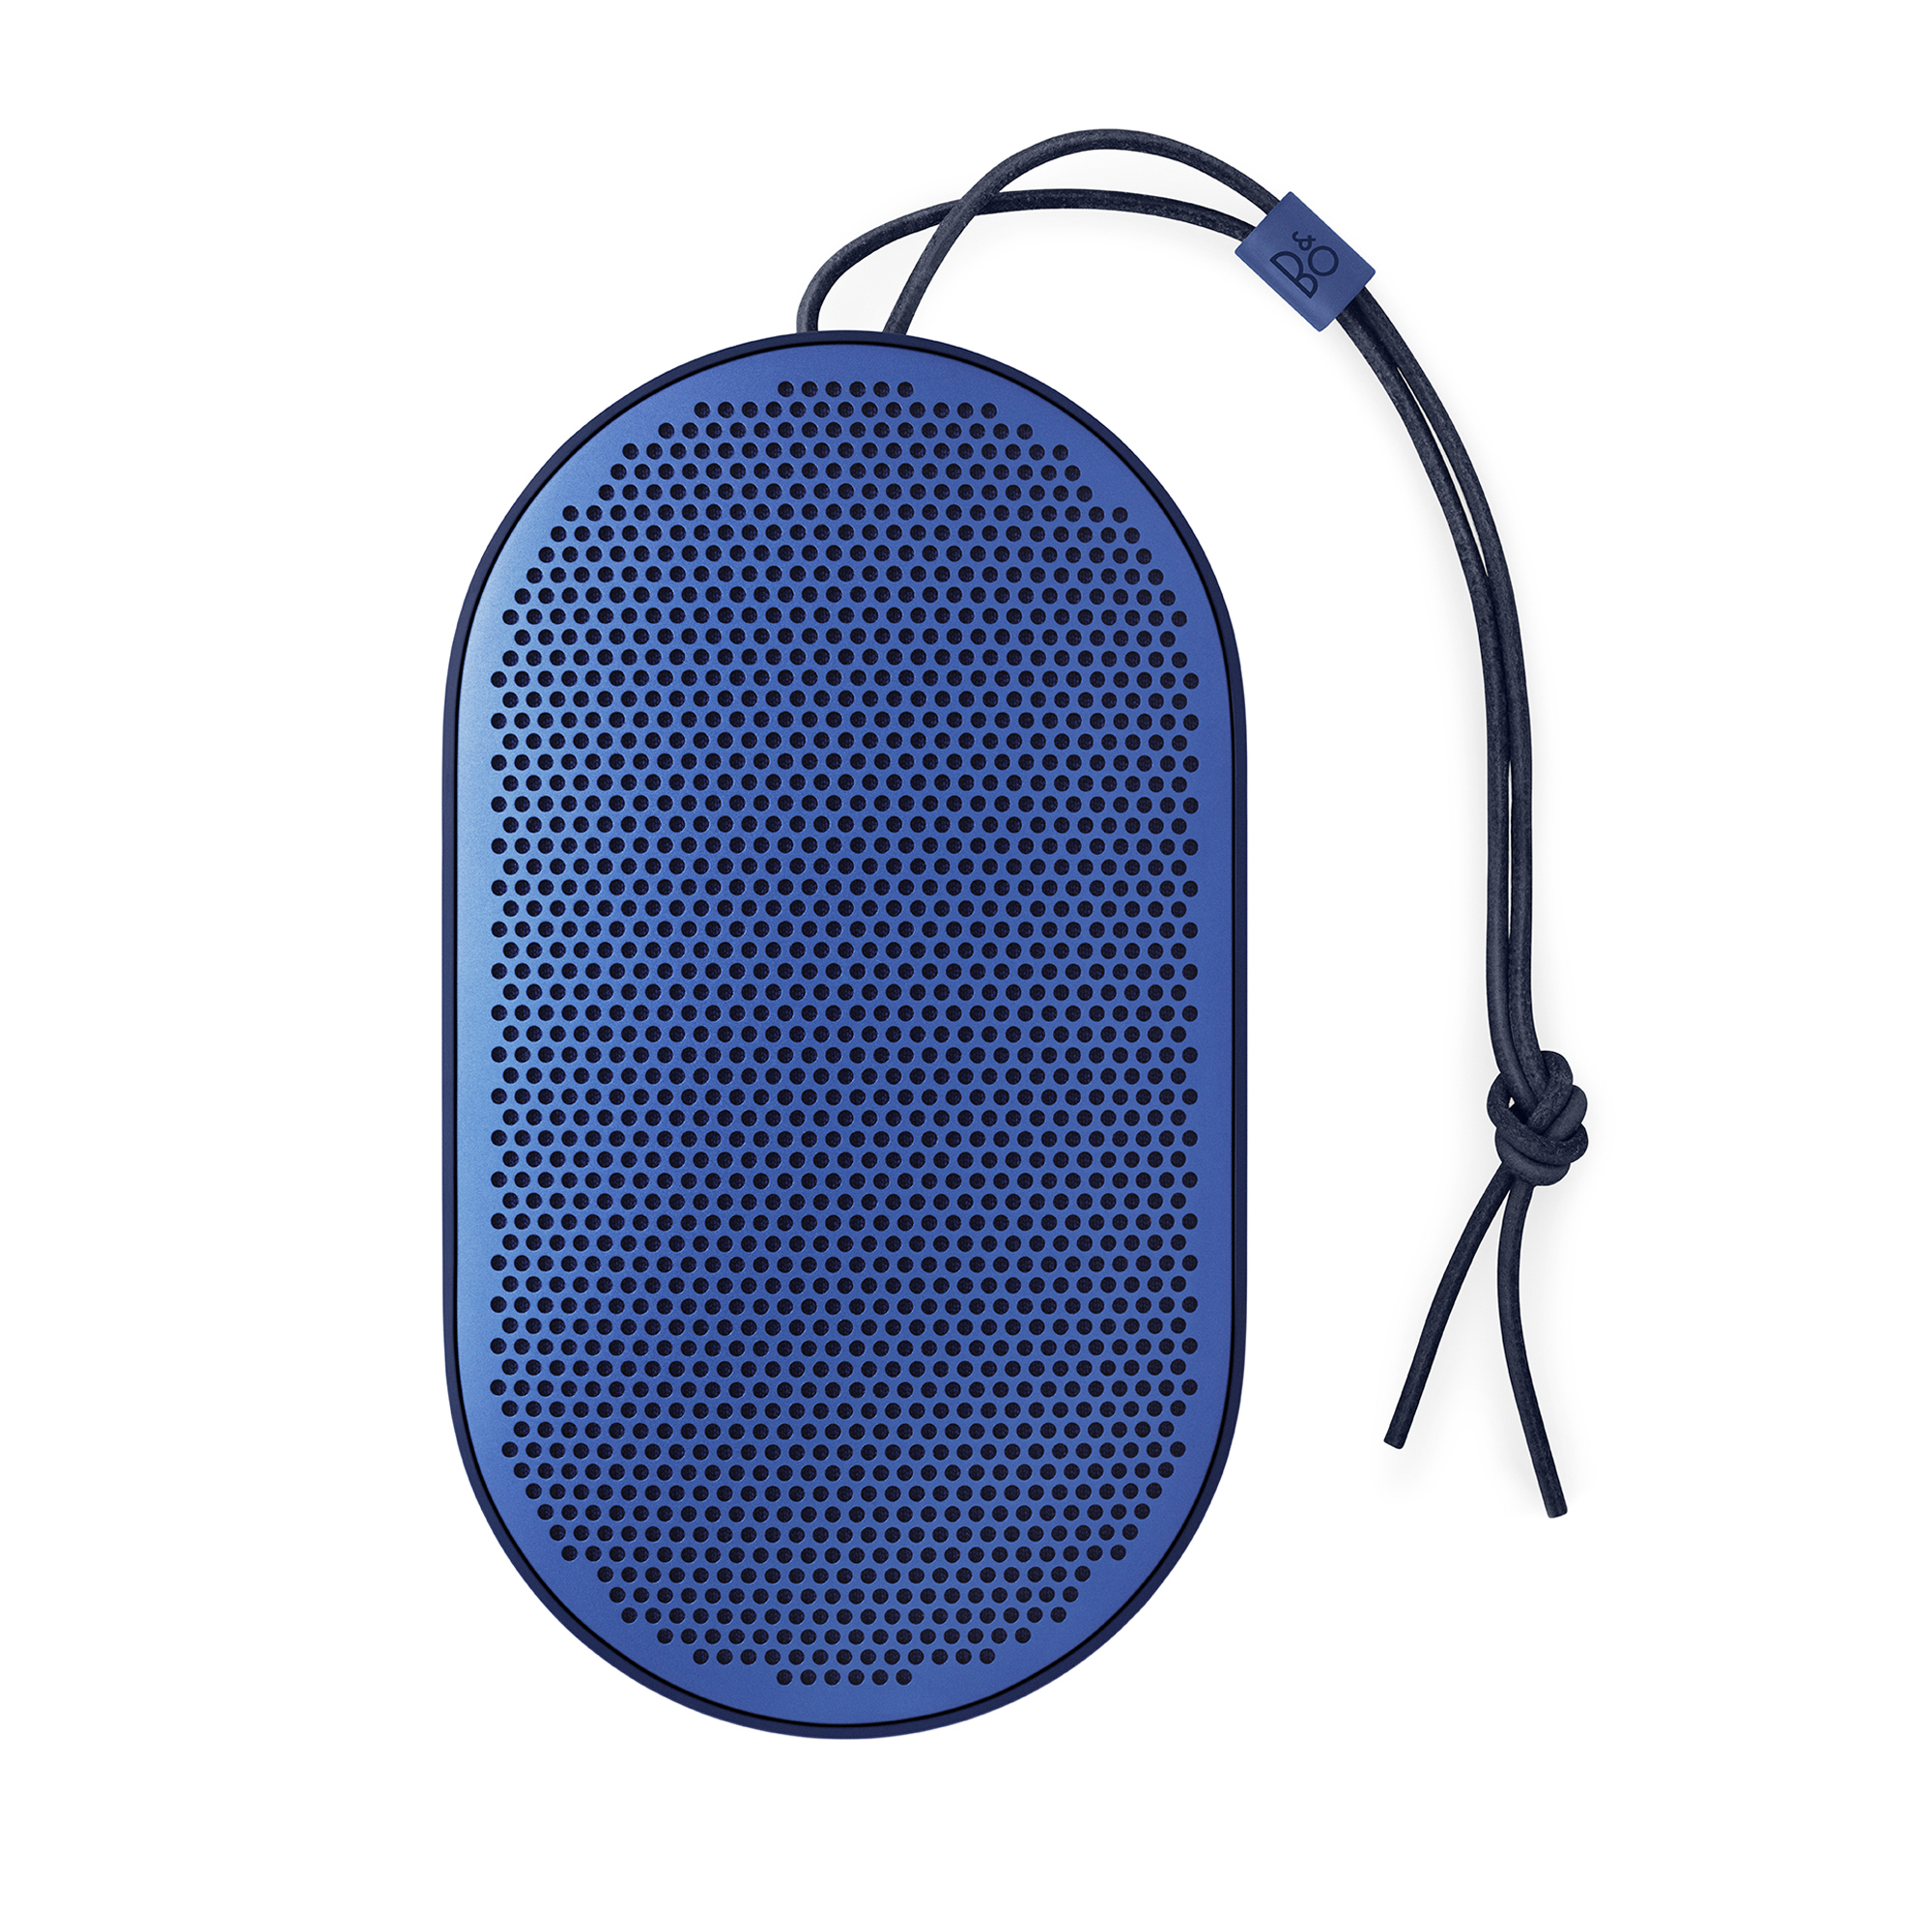 B&O Play รุ่น BeoPlay P2 Royal Blue